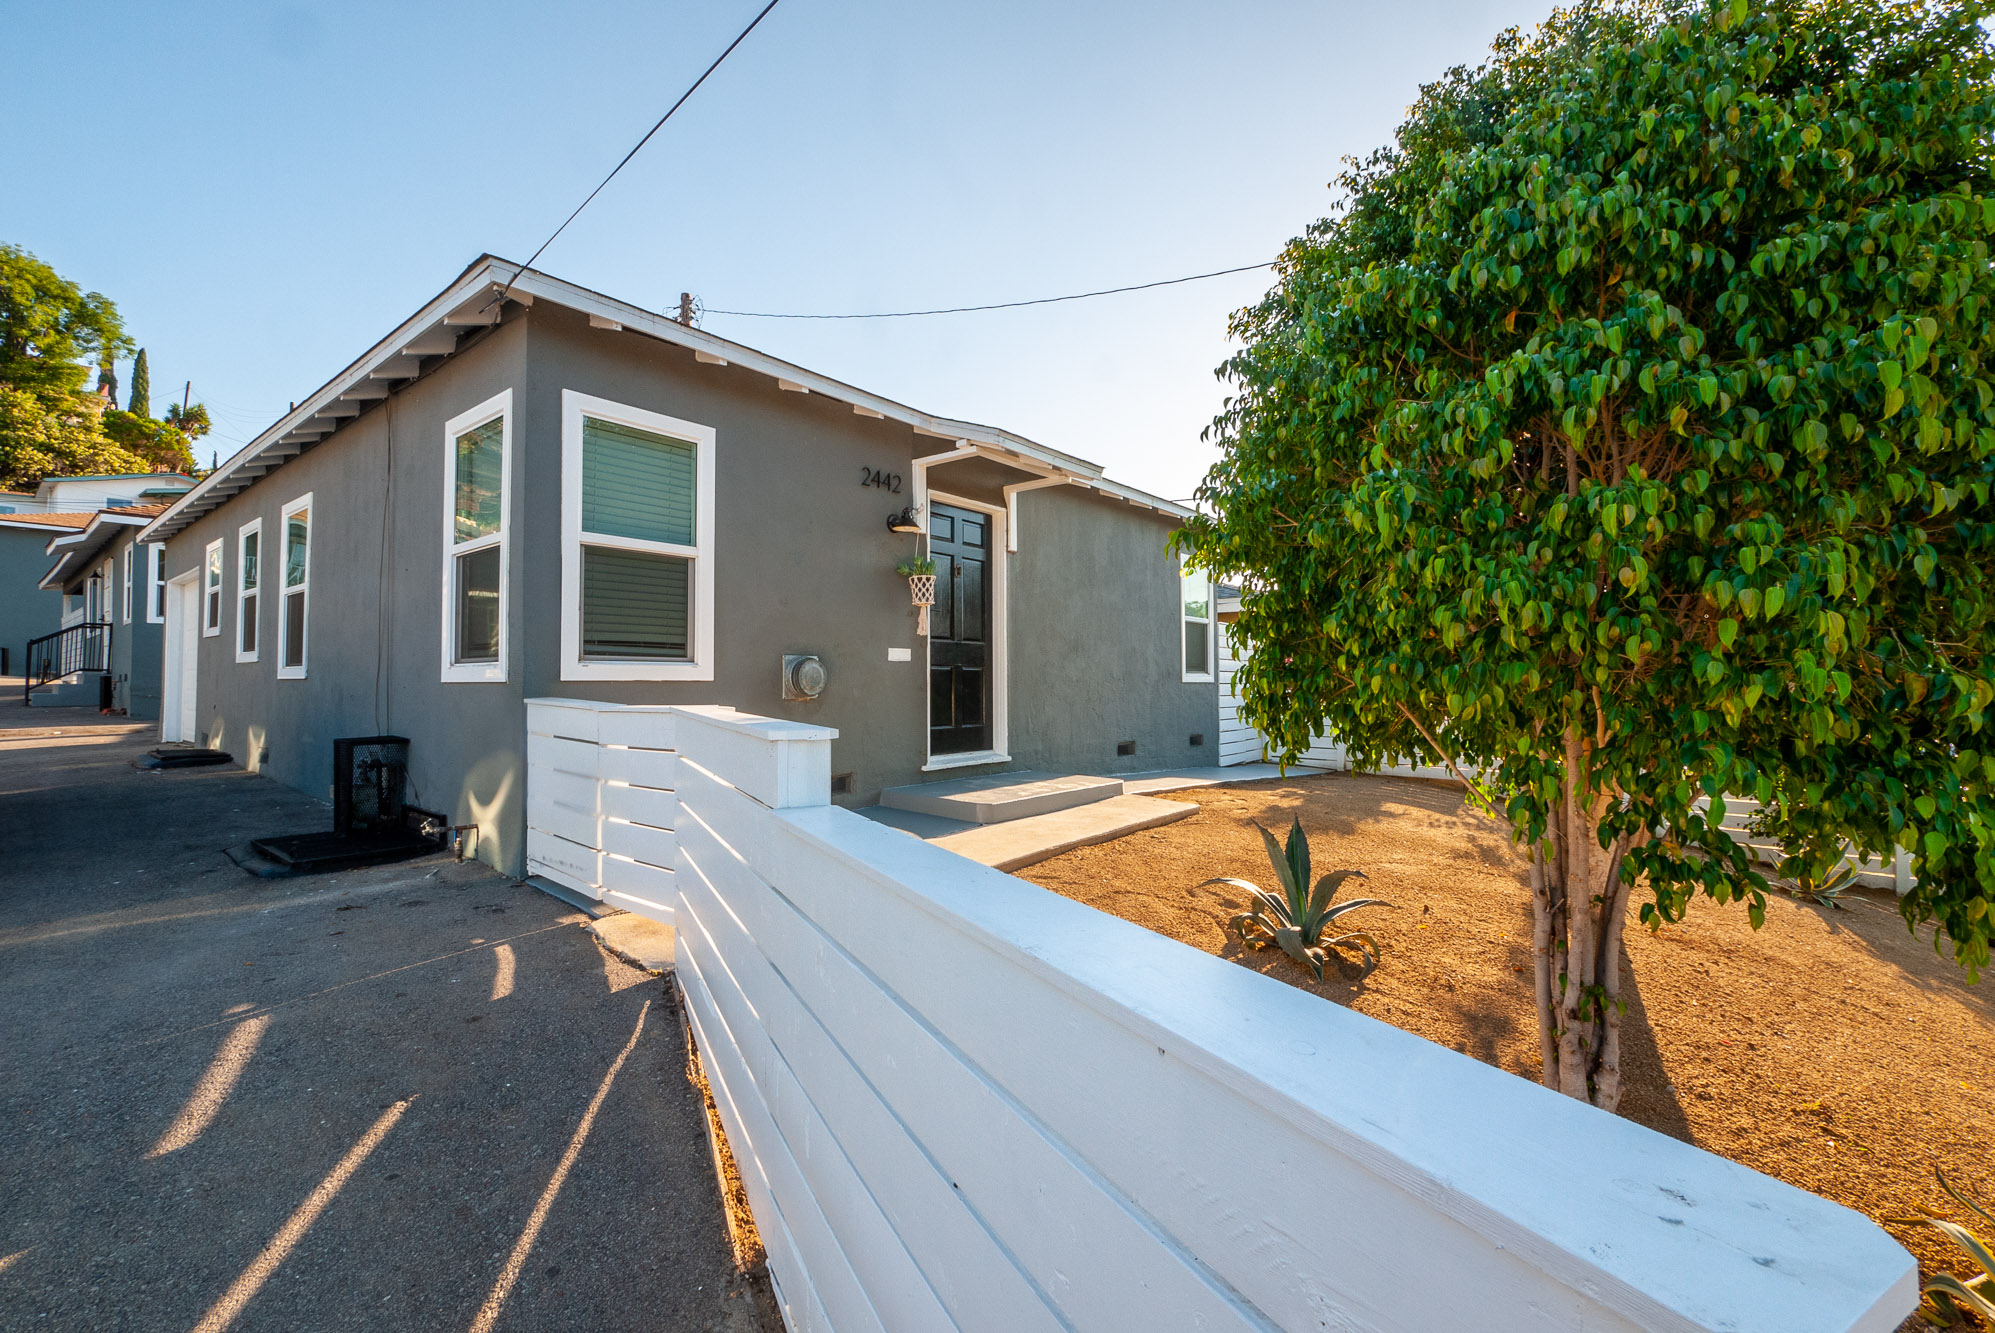 FREE-STANDING BUNGALOW | GARAGE | WASHER/DRYER | FENCED FRONT YARD AND PRIVATE BACK PATIO